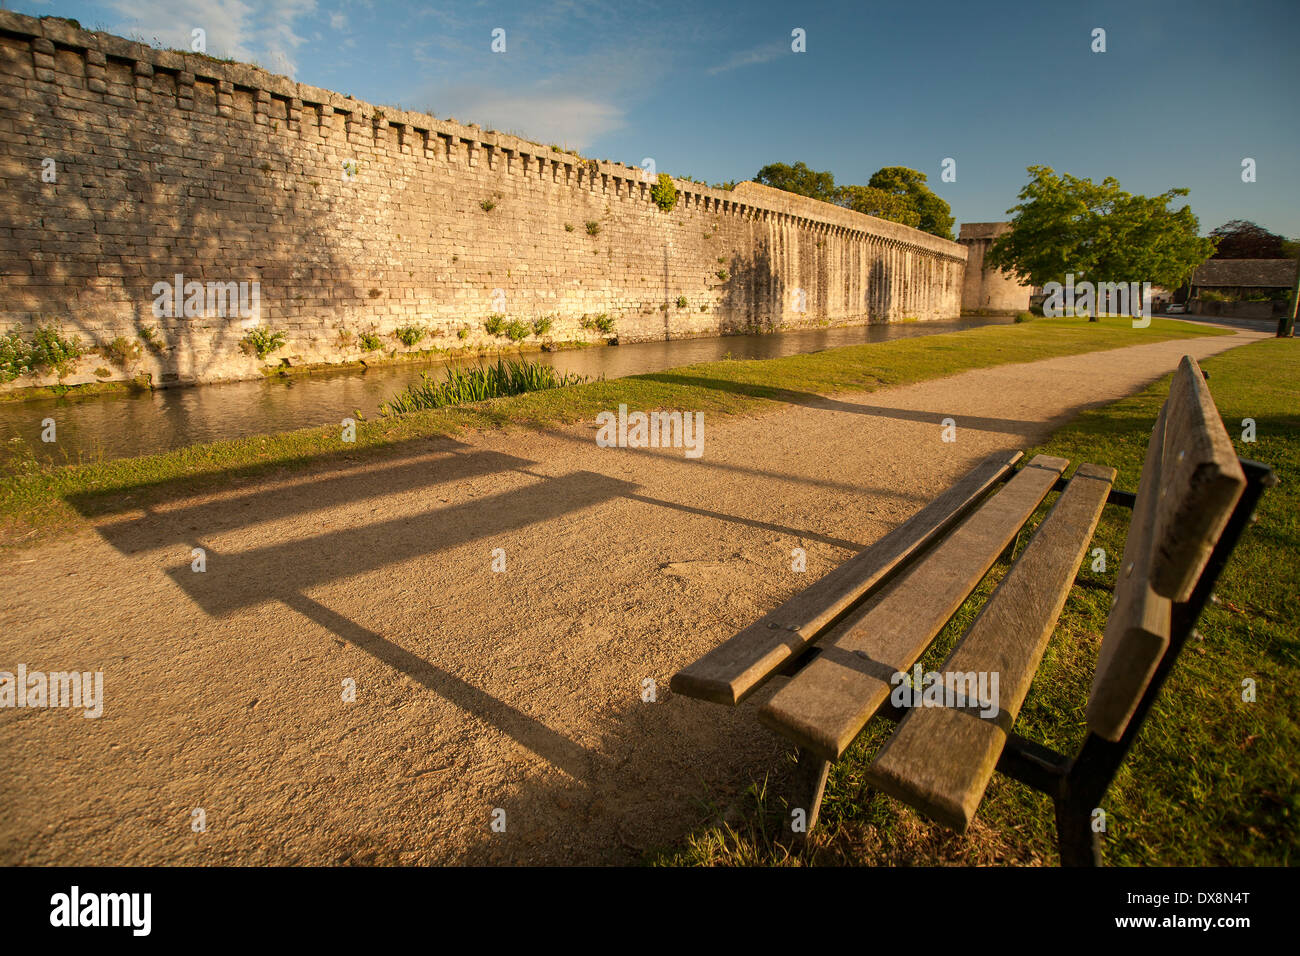 Public bench facing path castle wall and moat. Stock Photo